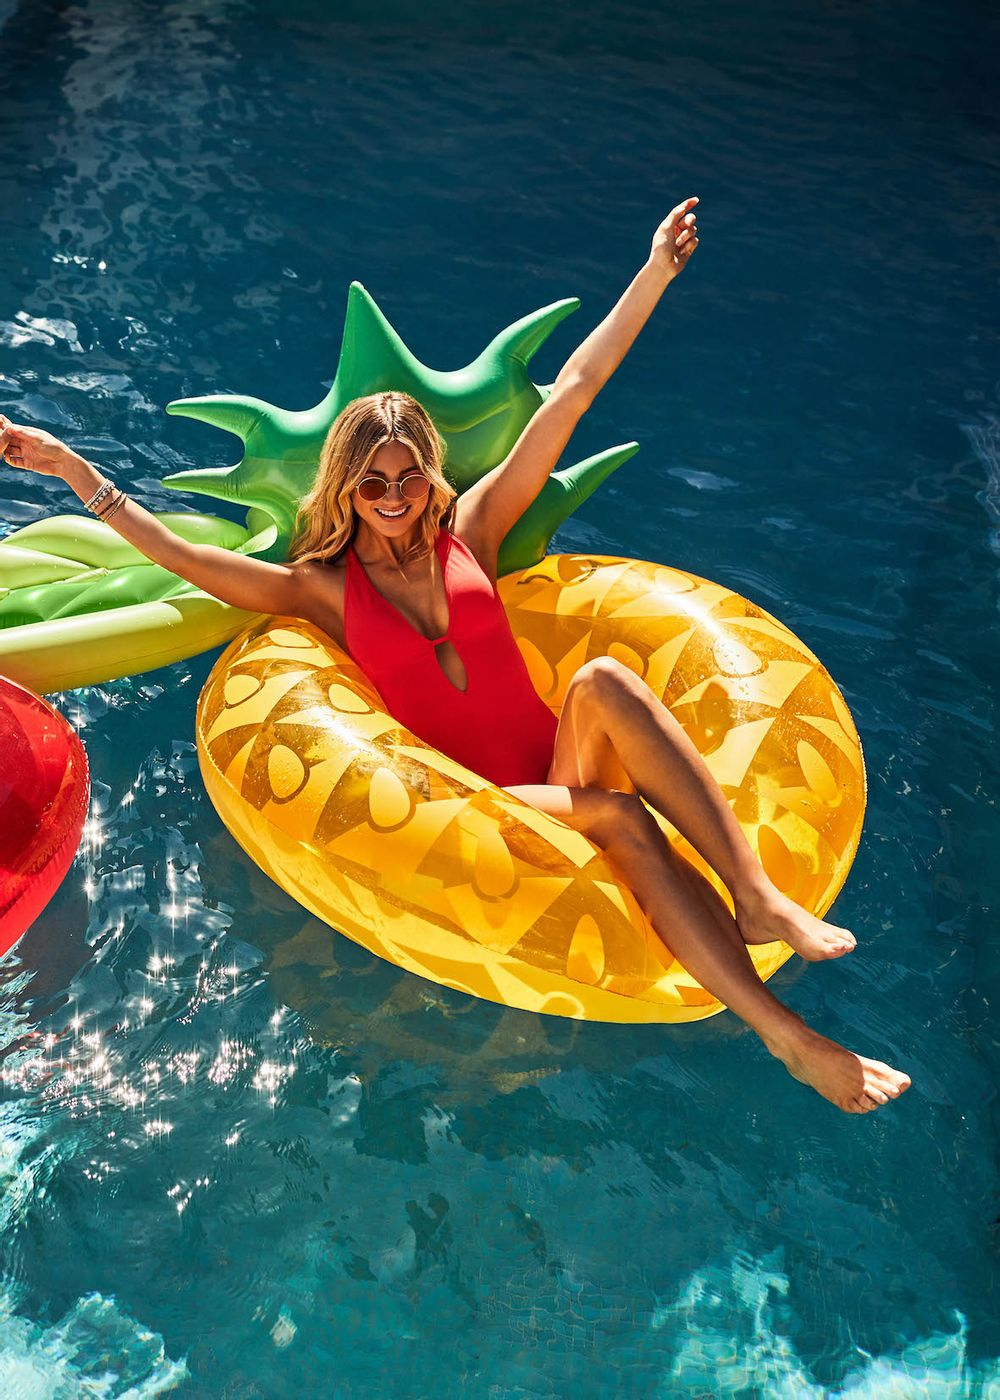 250430a55a-Inflatable-Pool-Rings